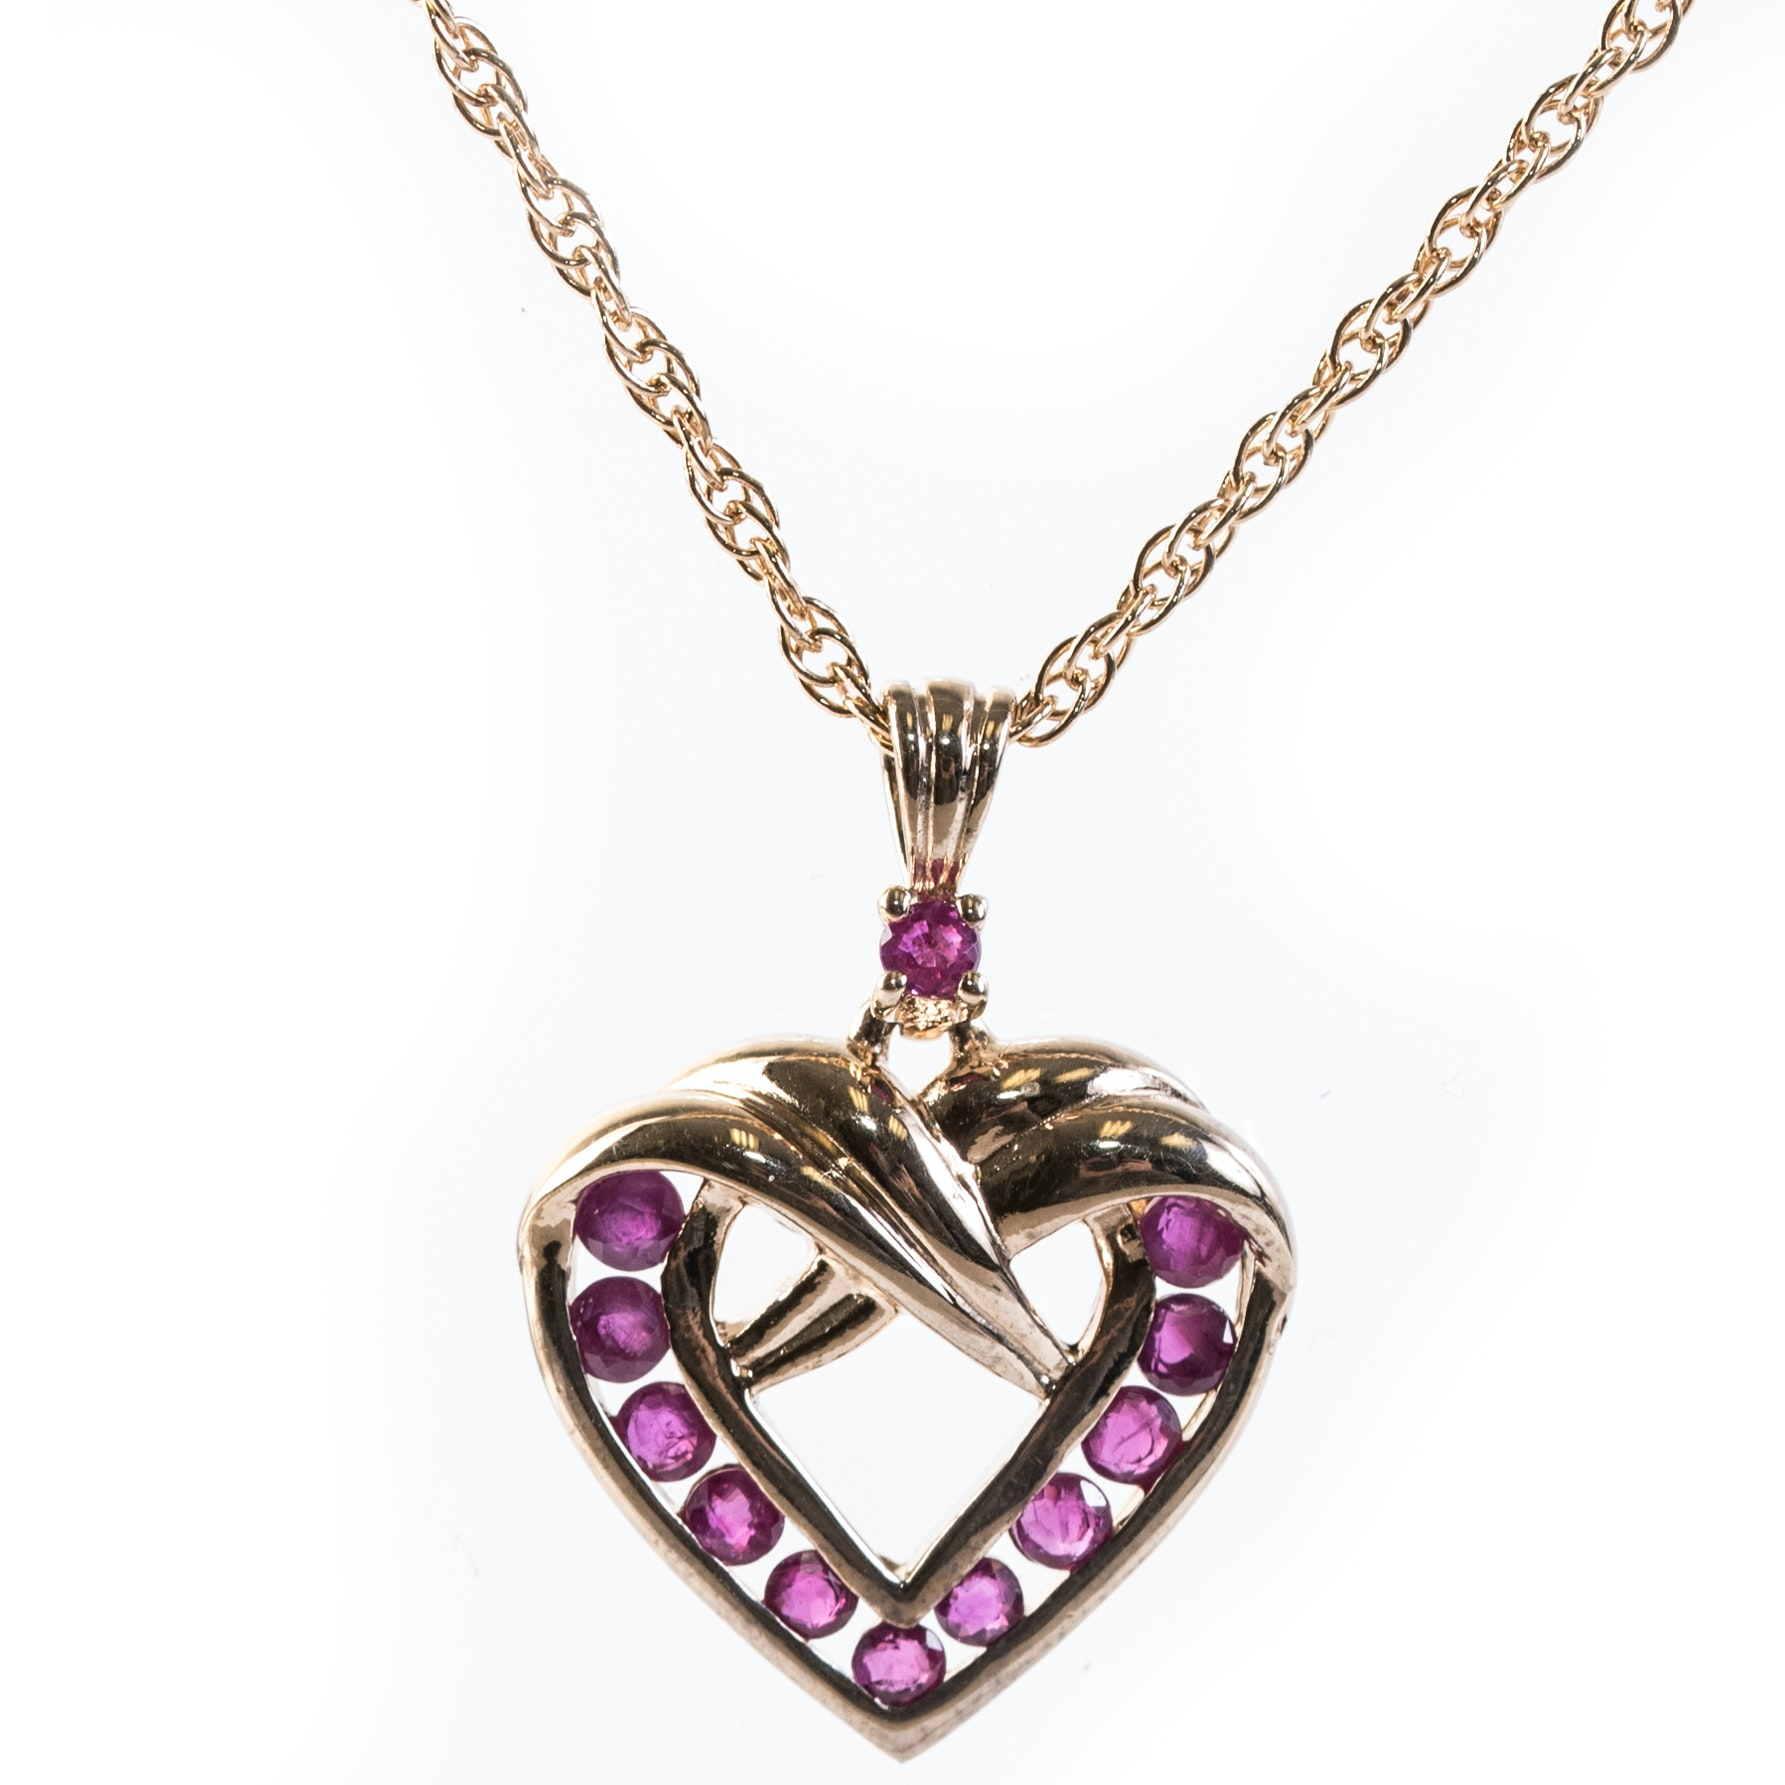 Sterling Silver and Ruby Heart Pendant Necklace